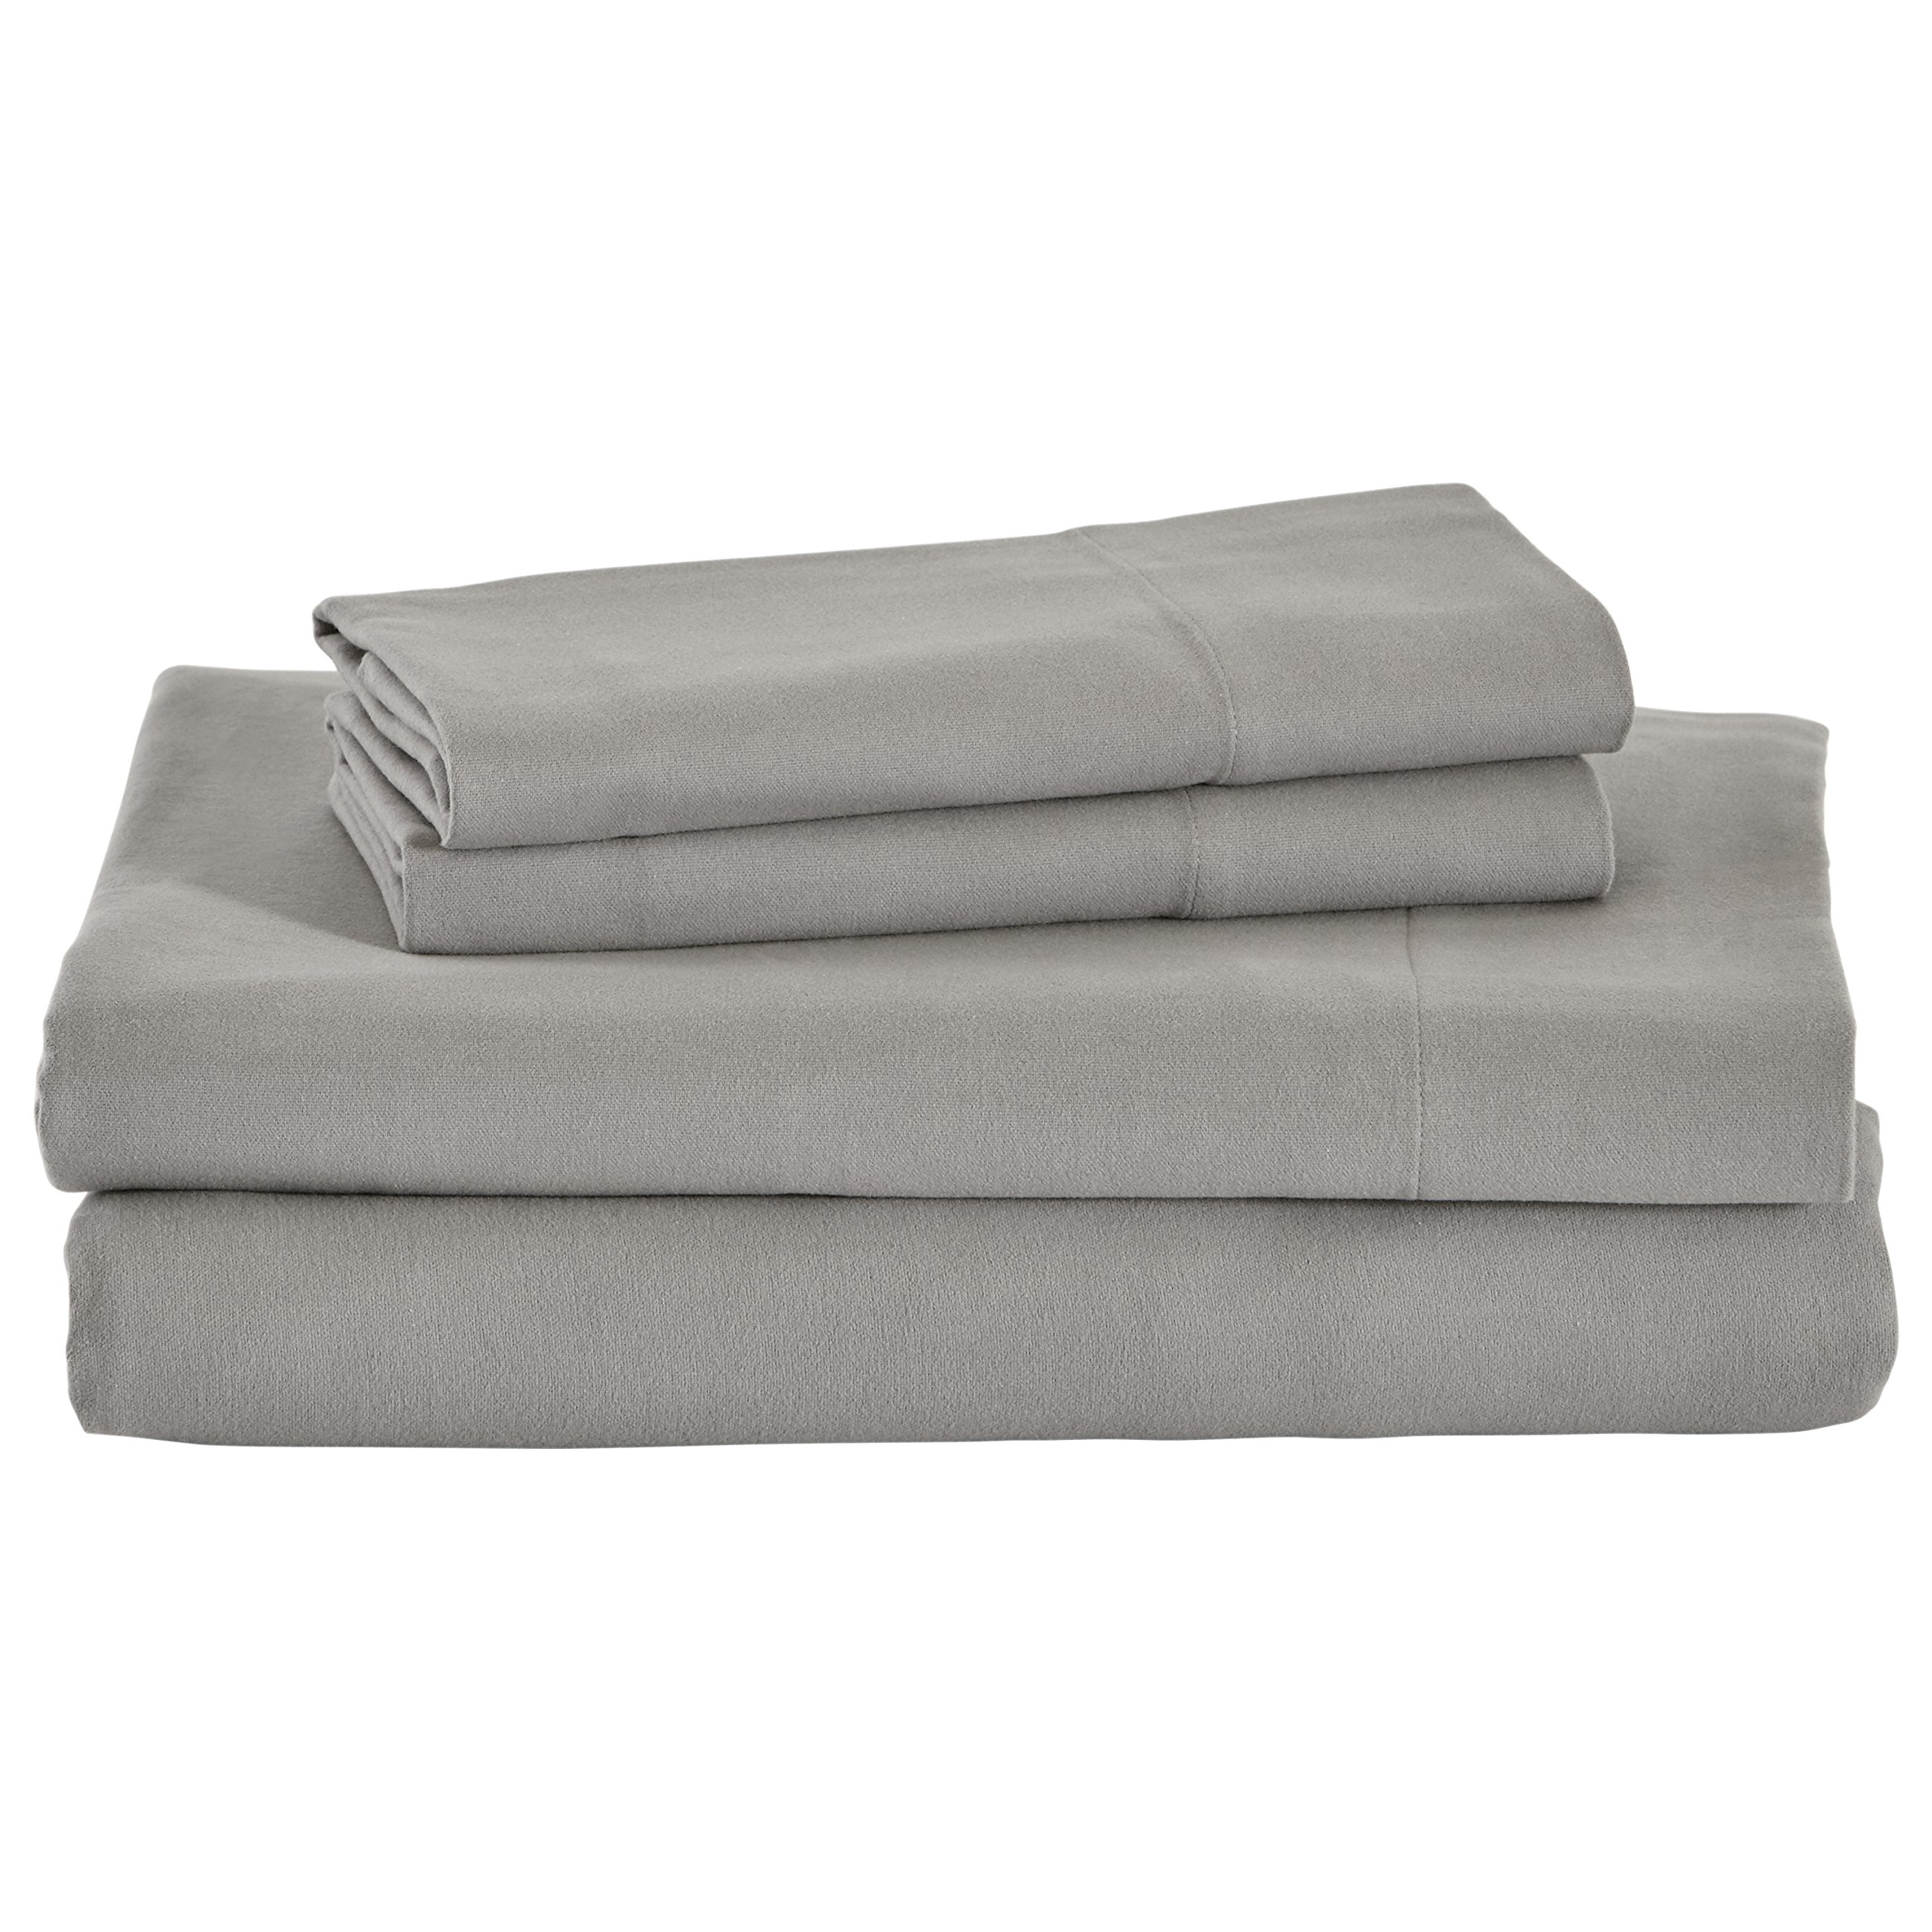 Stone & Beam Rustic Solid 100% Cotton Flannel Sheet Set, Soft and Easy Care, Queen, Heather